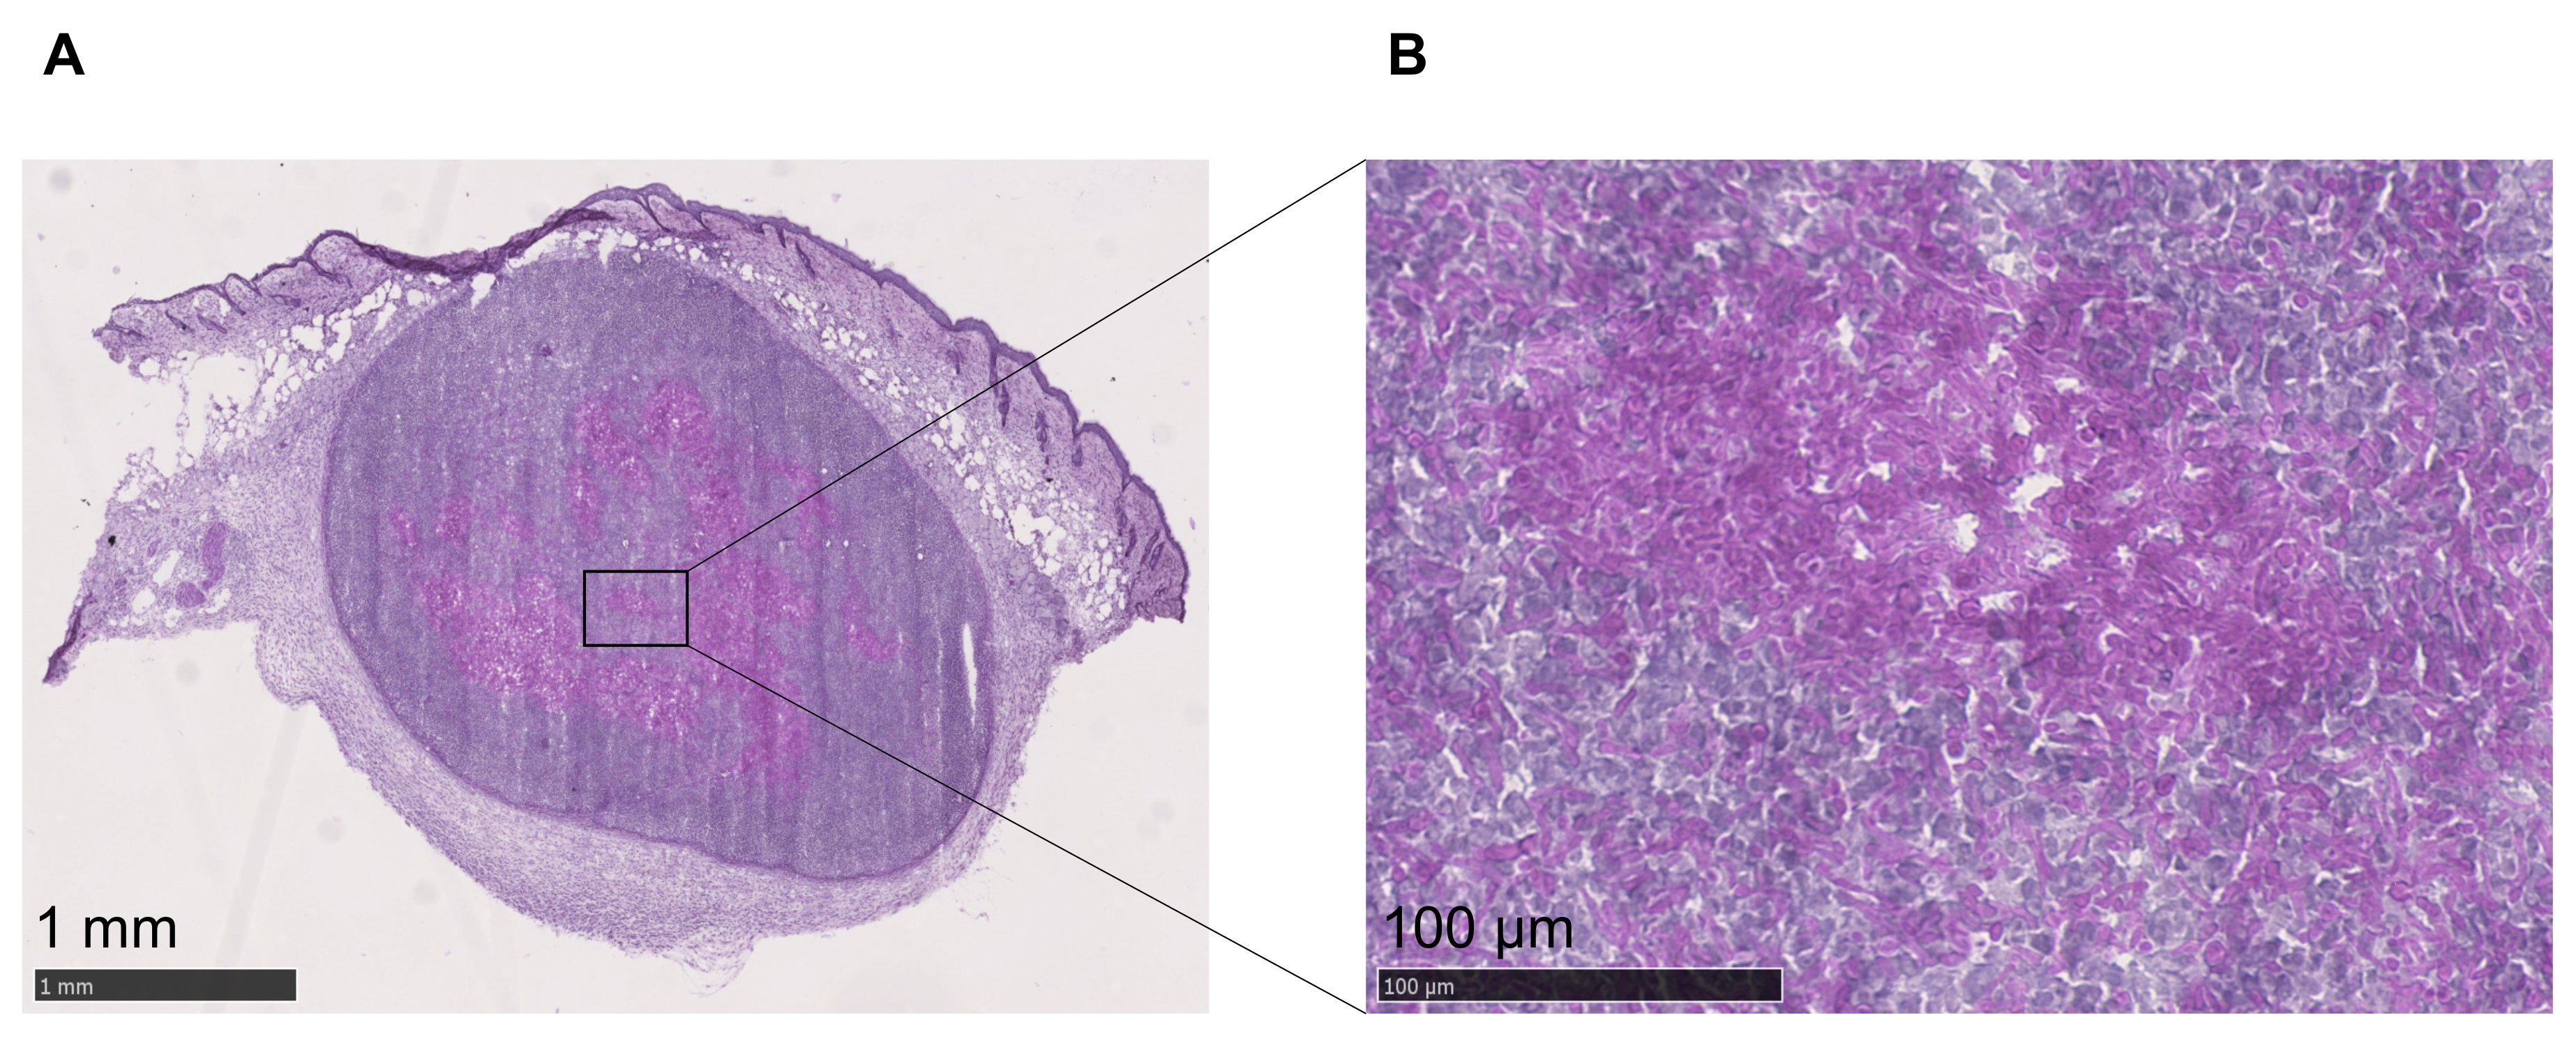 Deep Dermal Injection As A Model Of Candida Albicans Skin Infection